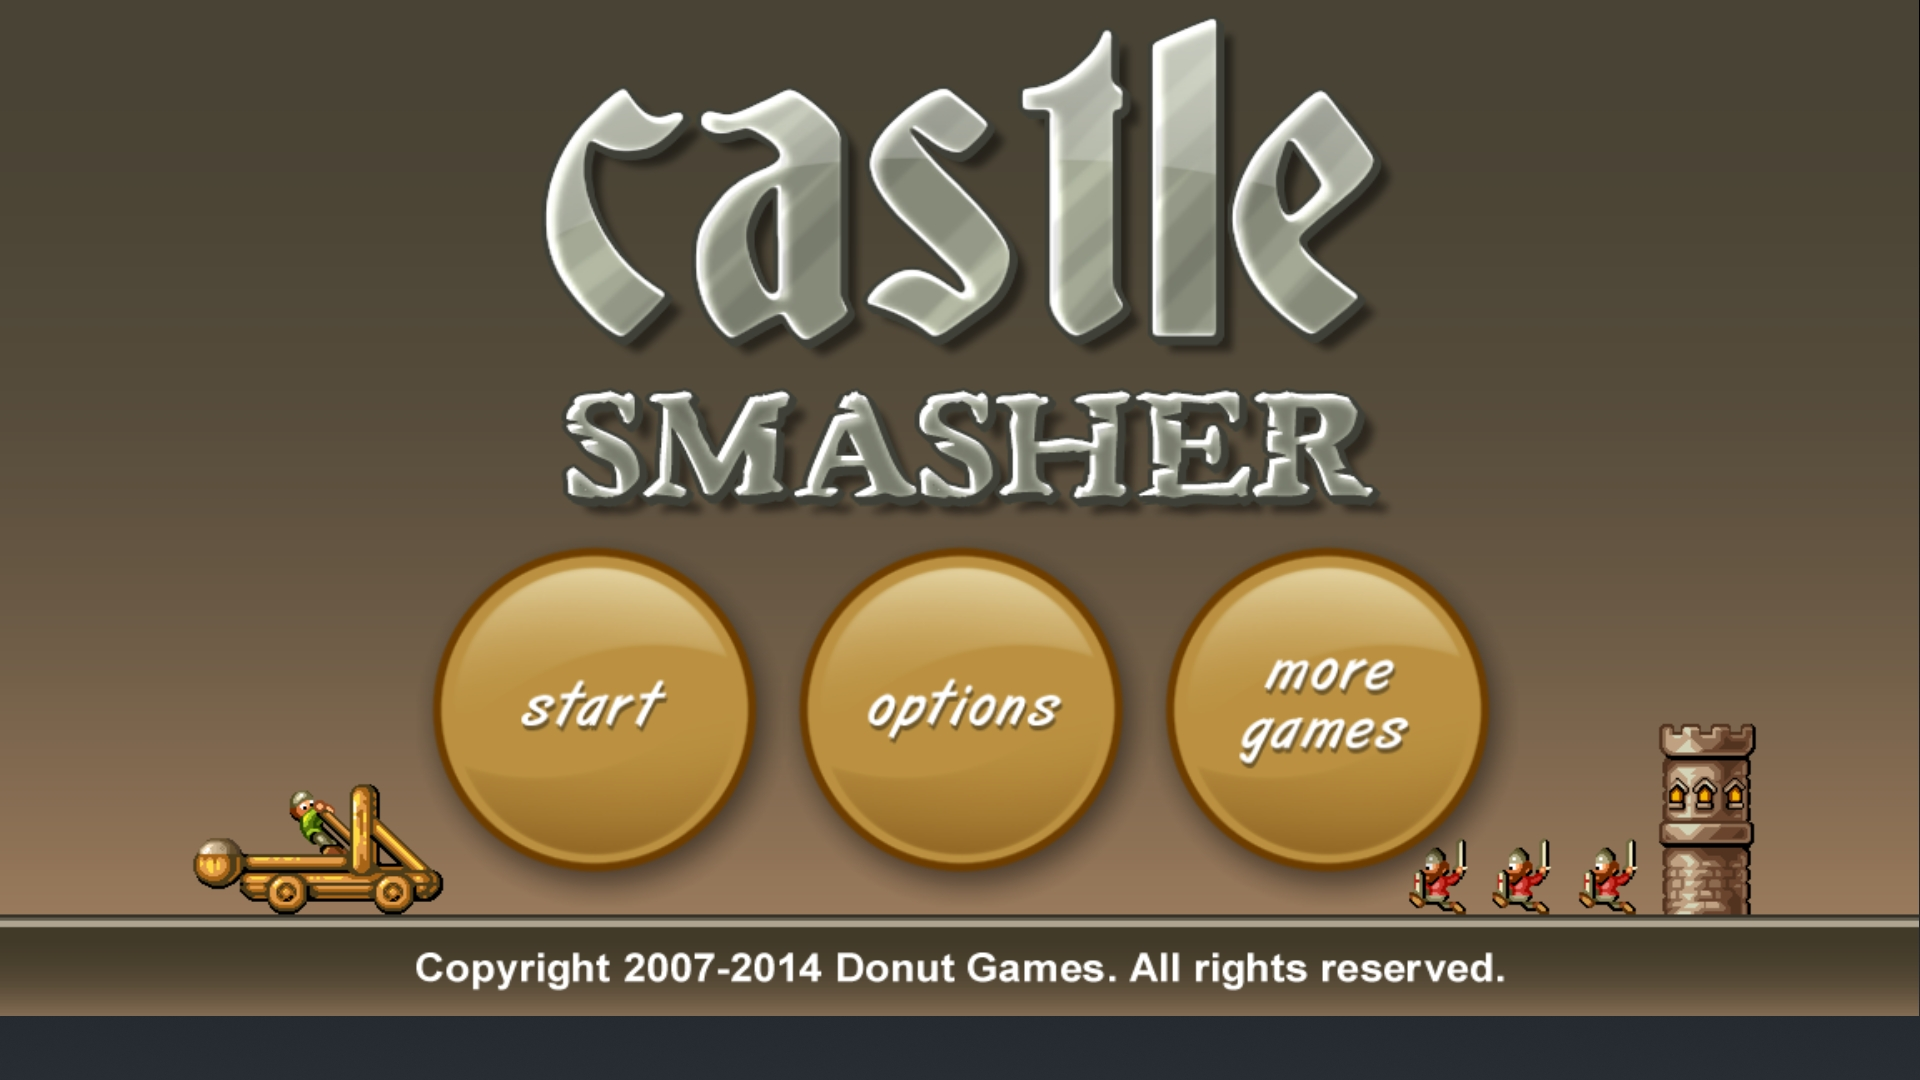 Bamse: Castle Smasher: Challenges: 17 Between Trees (Android) 31 points on 2019-08-21 17:18:26